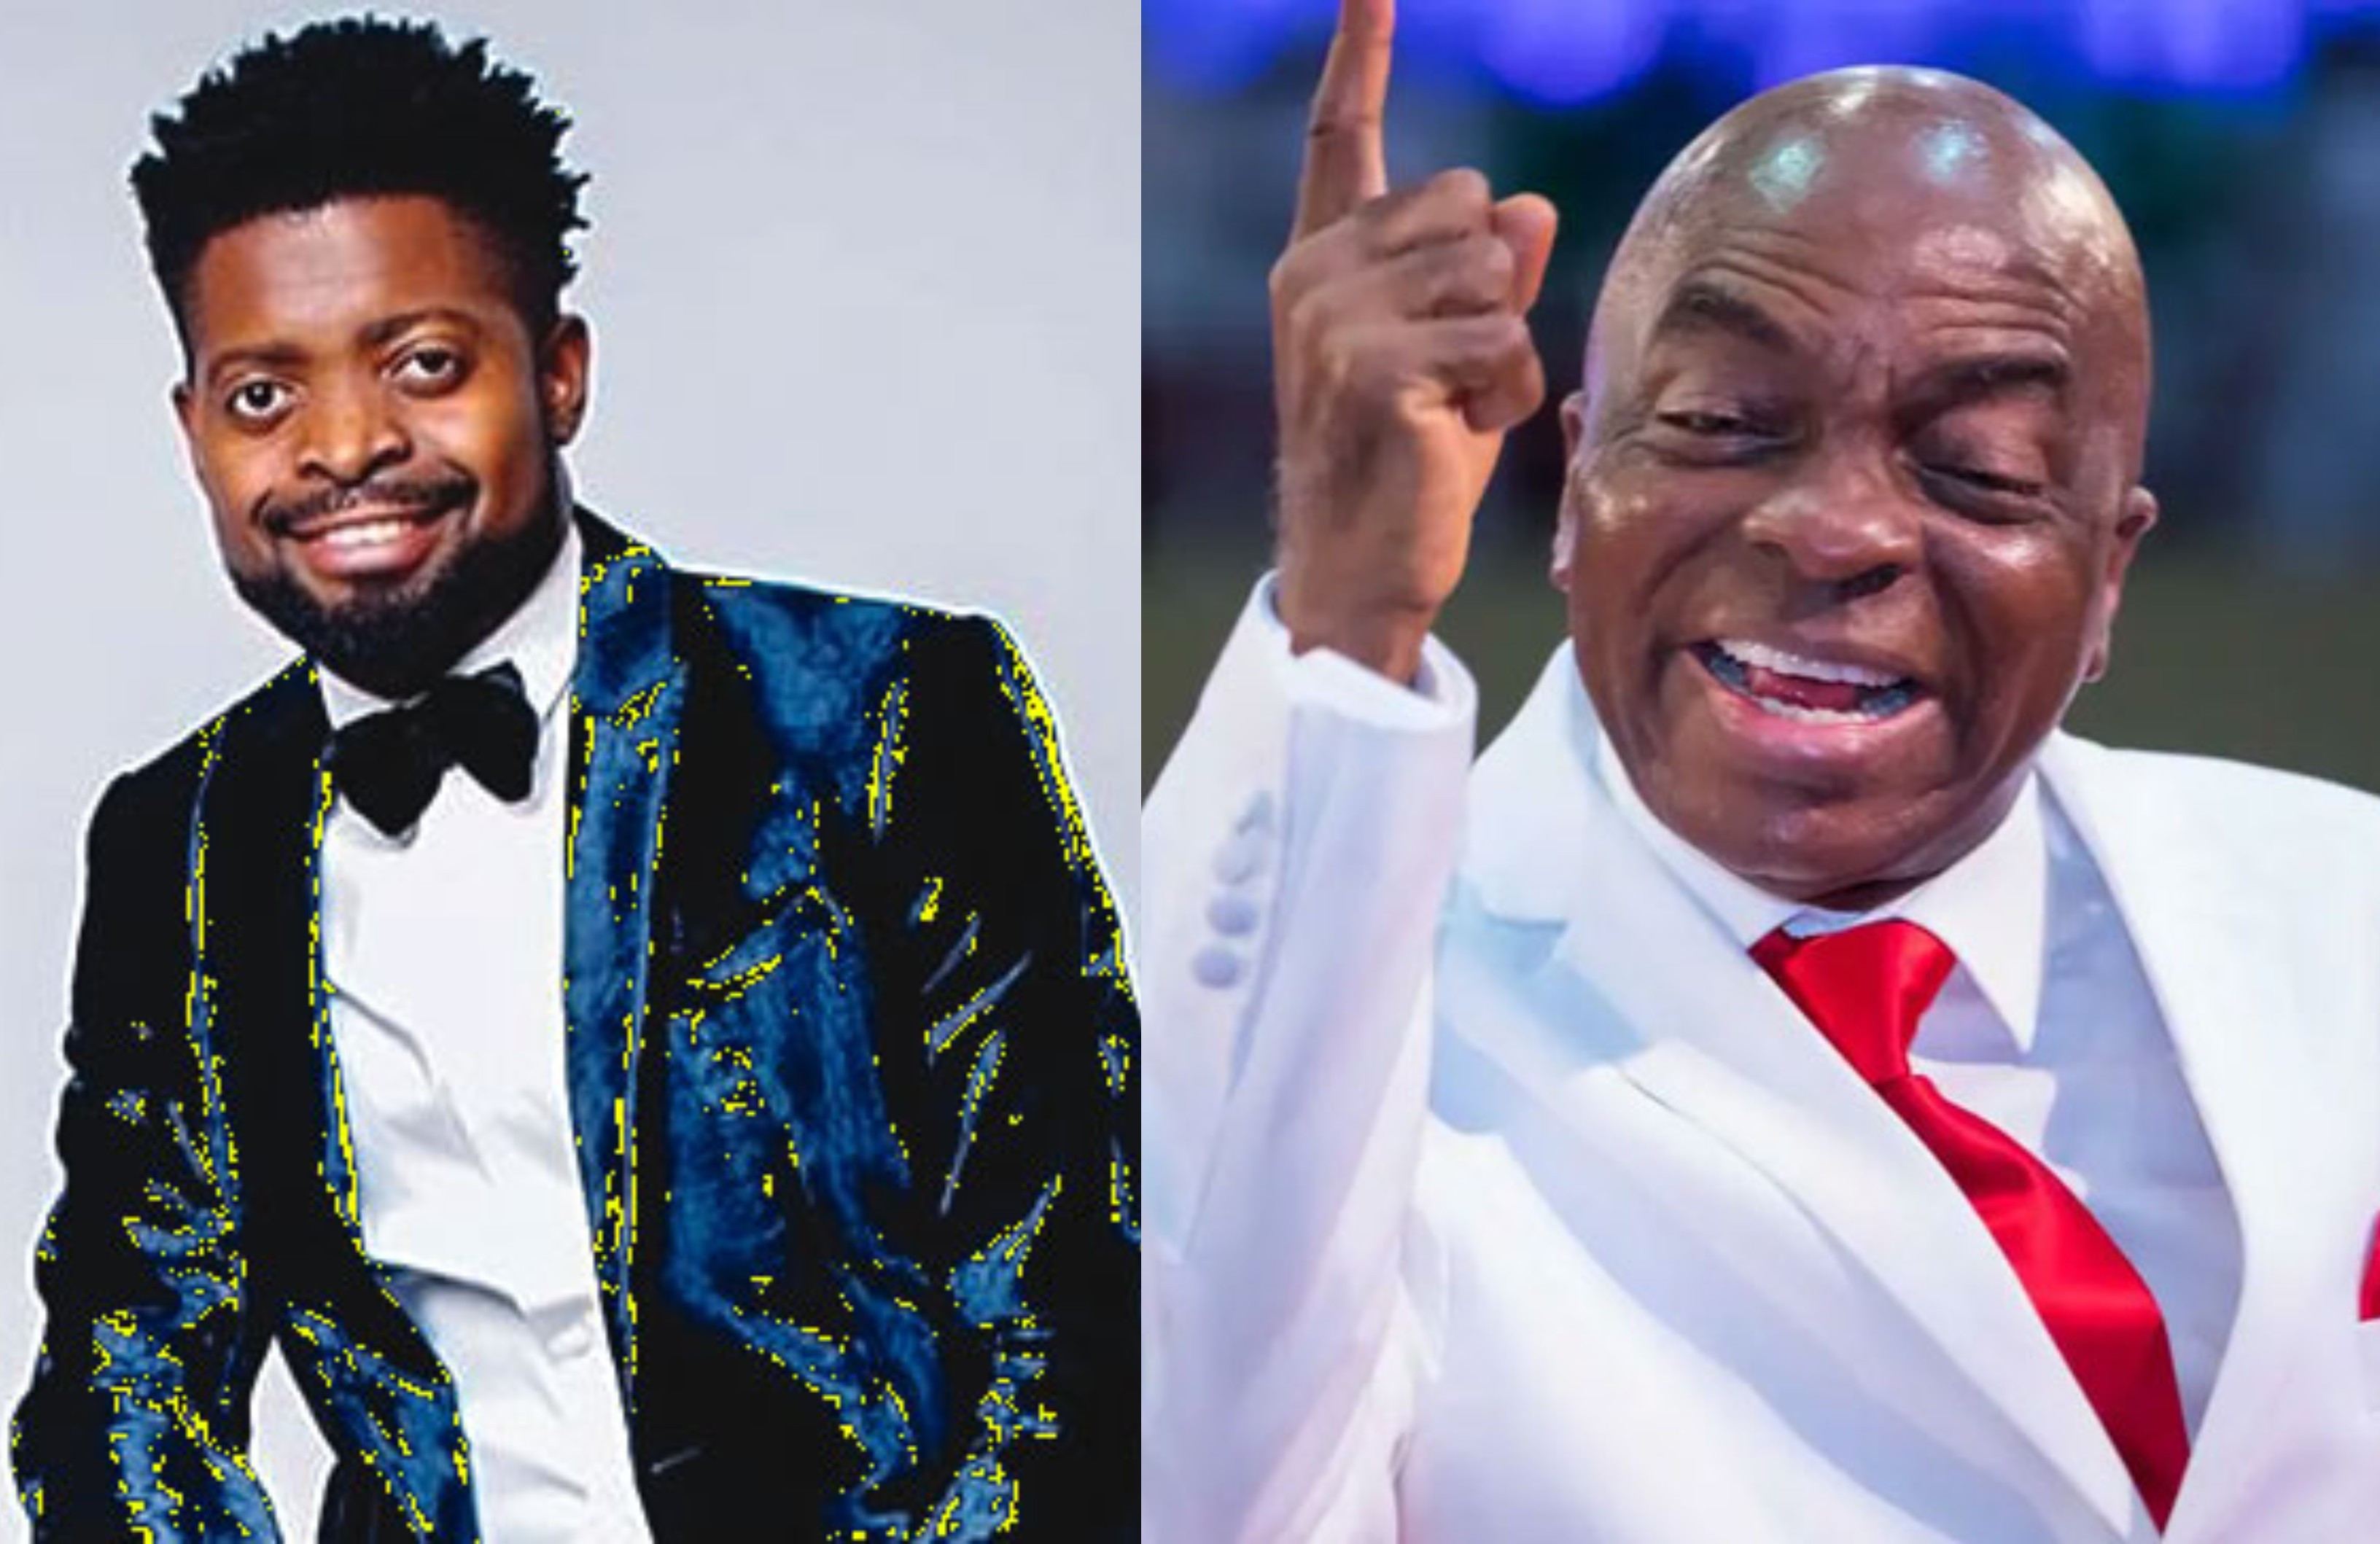 The church is now threatening us with financial curse over tithe - Basketmouth reacts to Oyedepo